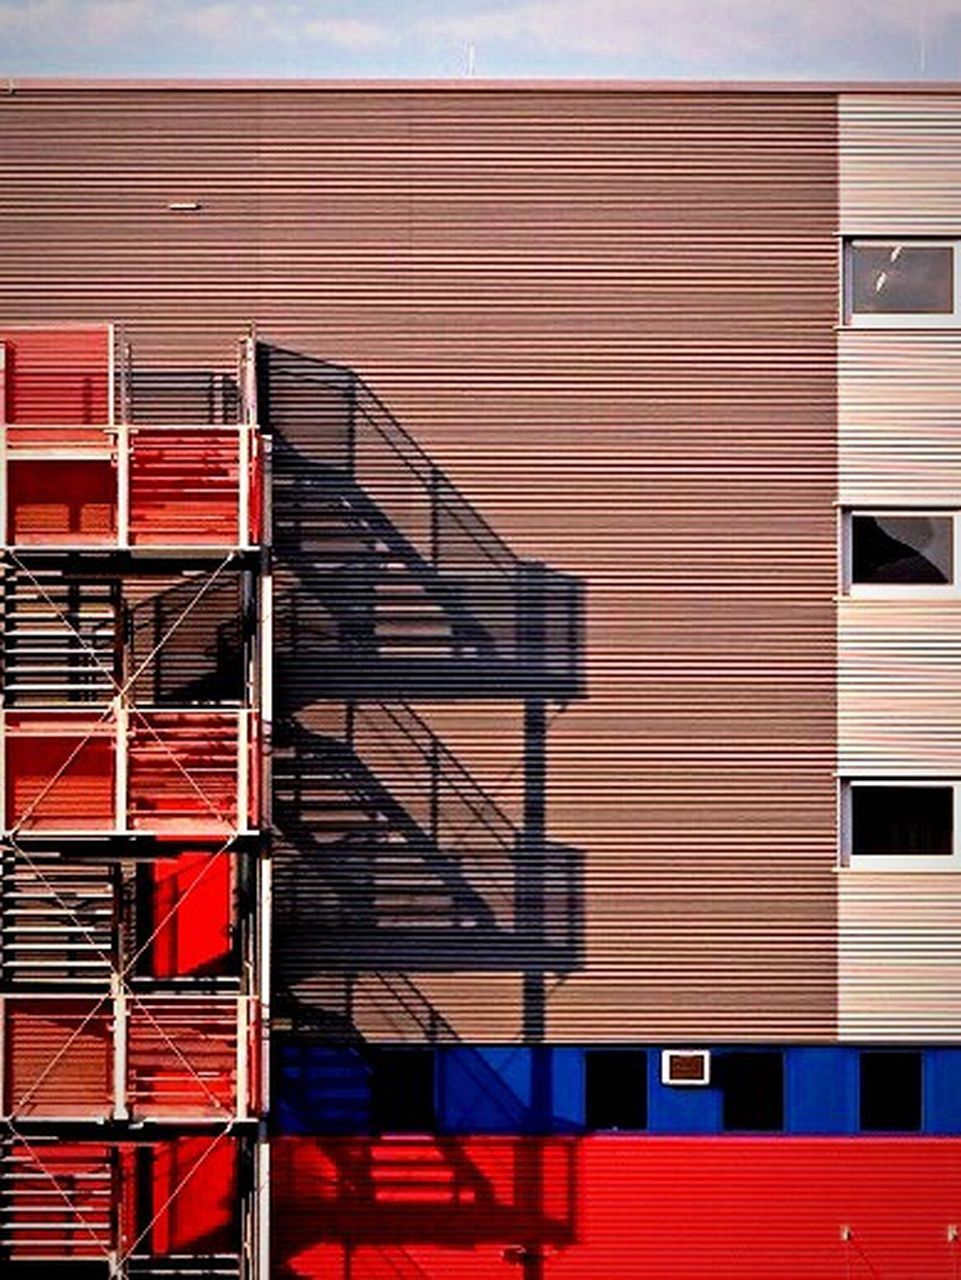 architecture, red, building exterior, industry, built structure, day, no people, building, nature, outdoors, metal, cargo container, sunlight, blue, in a row, freight transportation, container, stack, shadow, transportation, iron